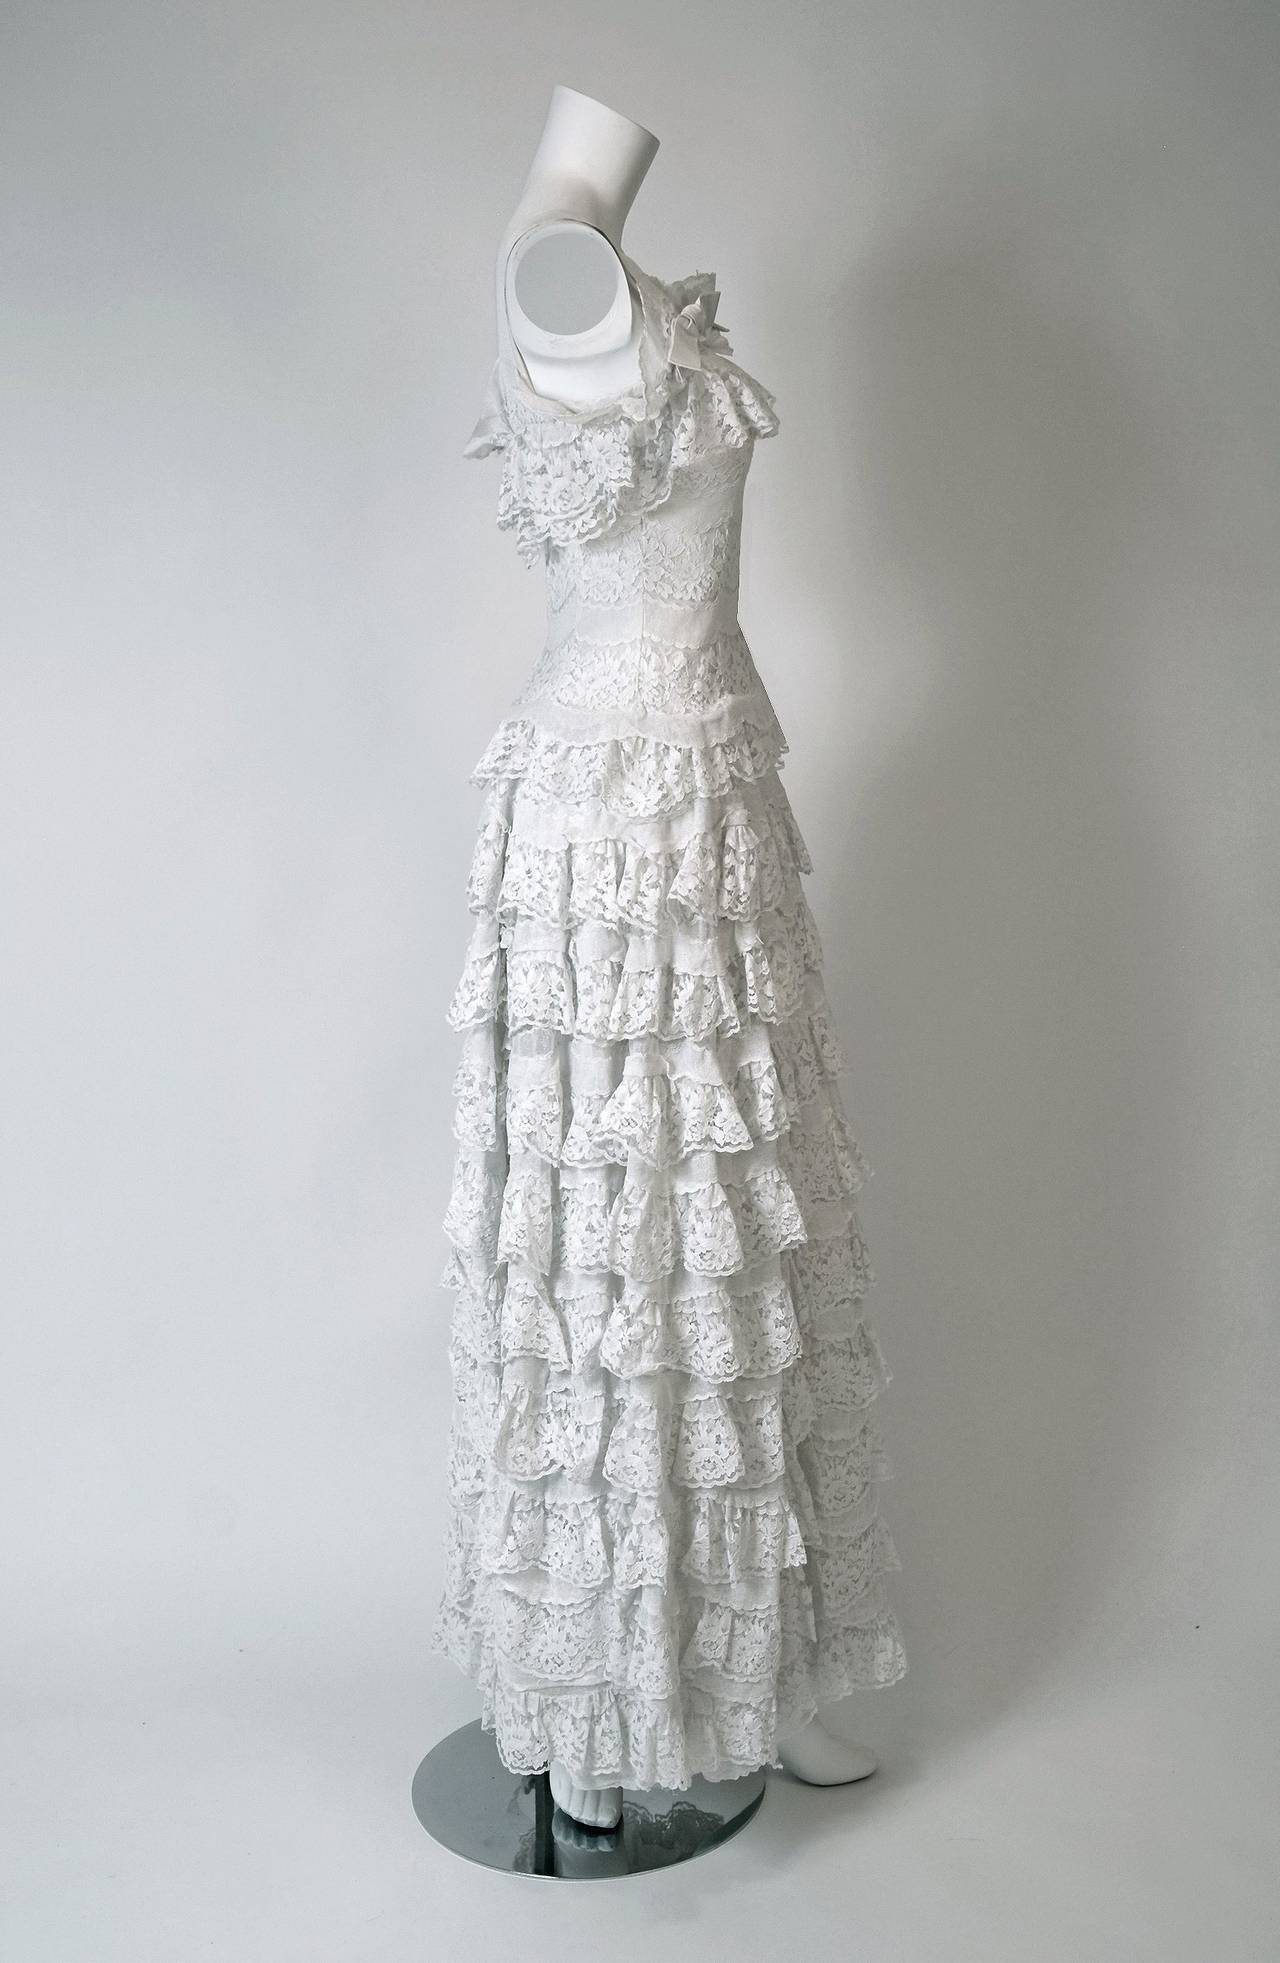 1962 Christian Dior Paris Demi-Couture White Tiered Ruffle Lace ...